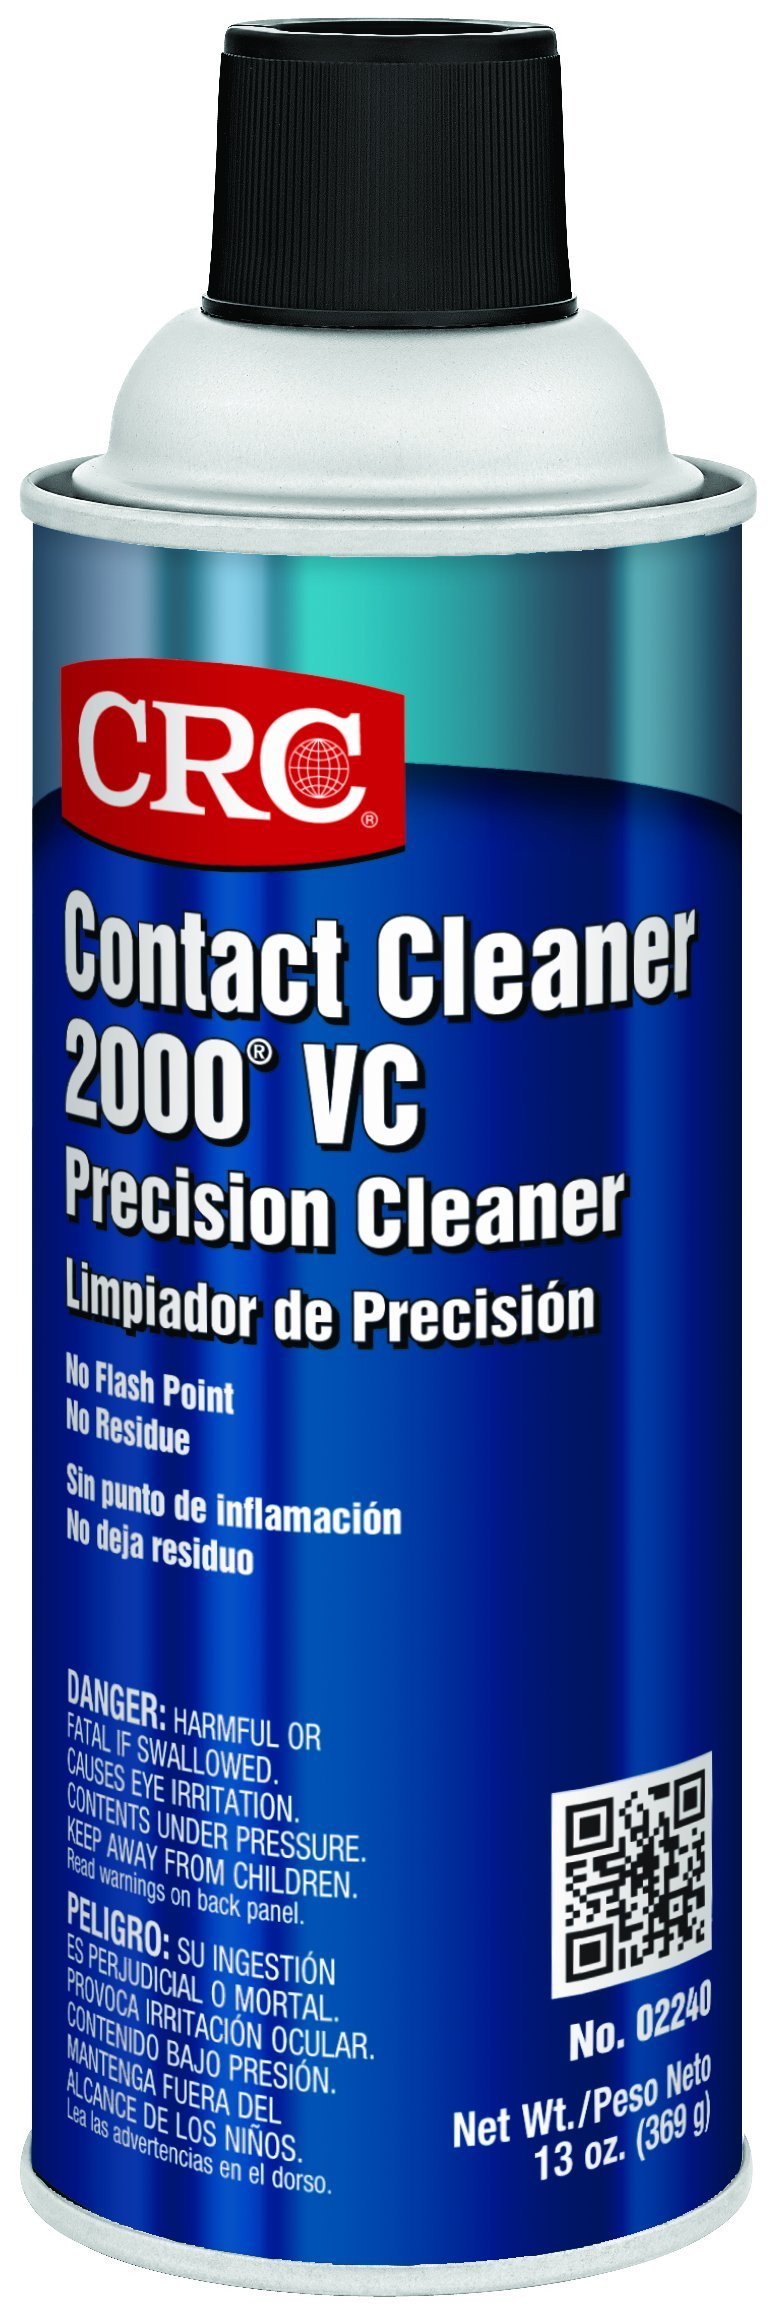 CRC Contact 2000 VC Precision Cleaner, 16 oz (Net Fill 13 oz) Aerosol Can, Clear by CRC